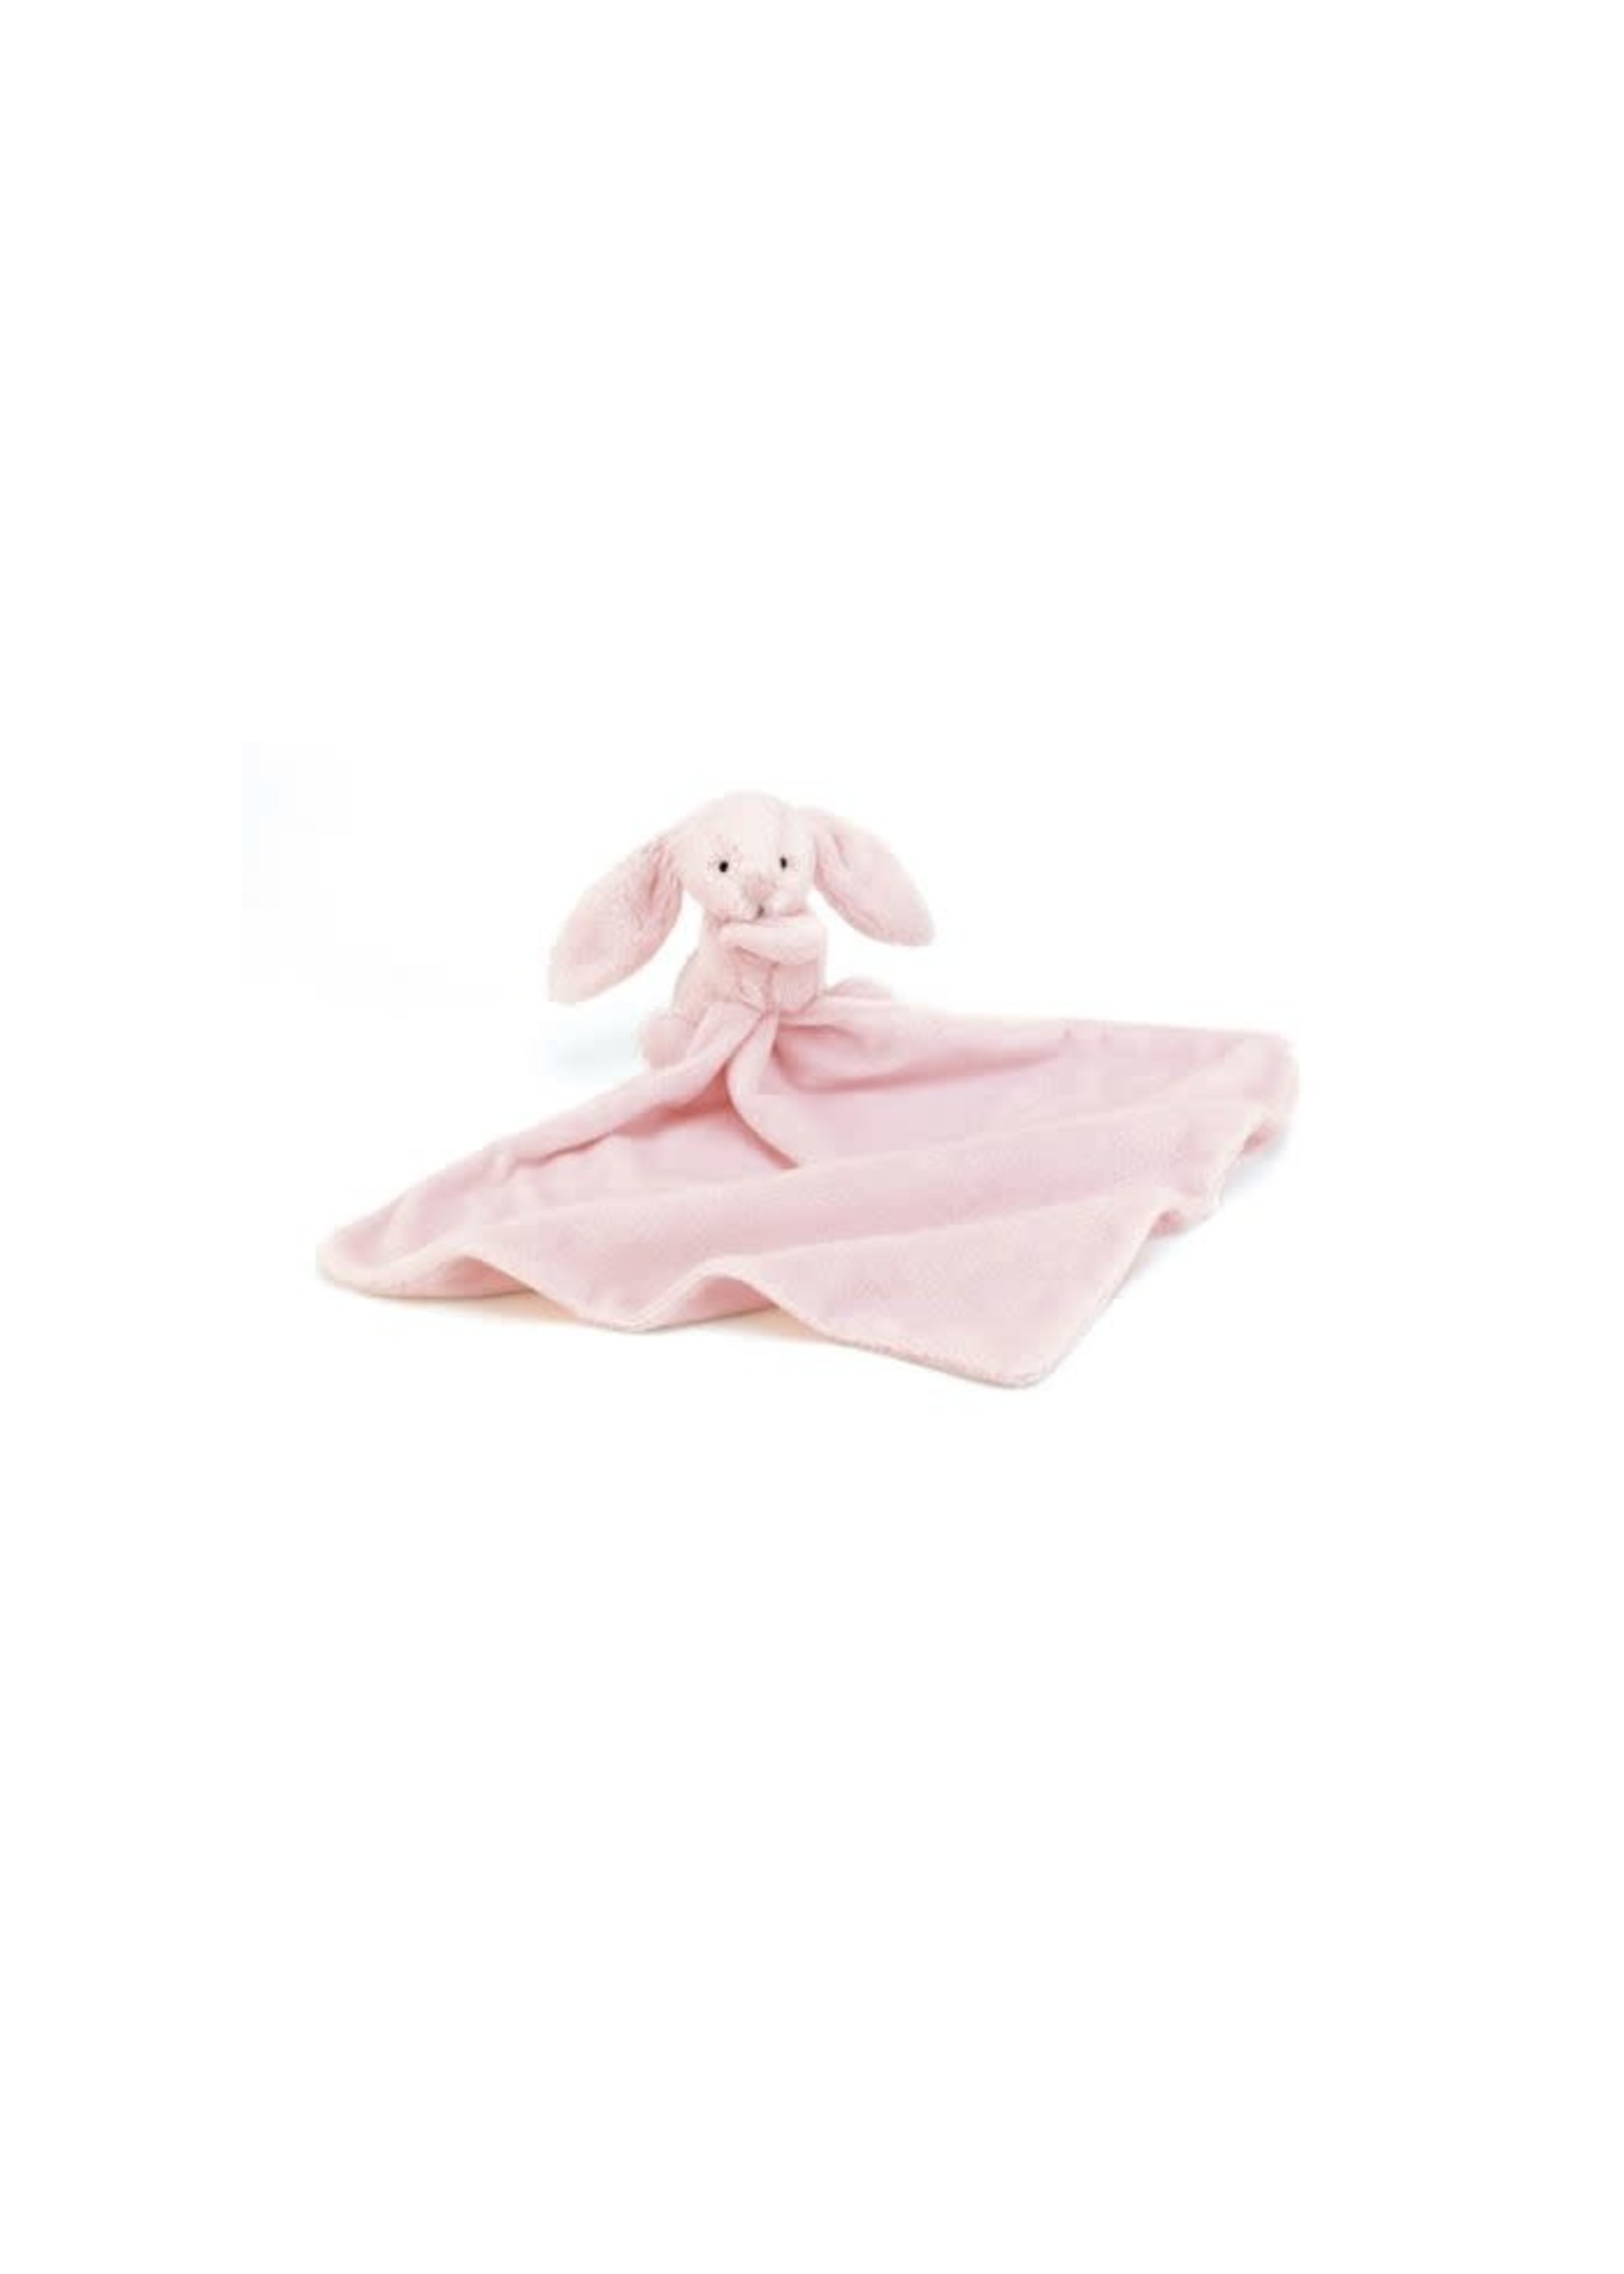 Jellycat JC Soother Blanket Bashful Pink Bunny